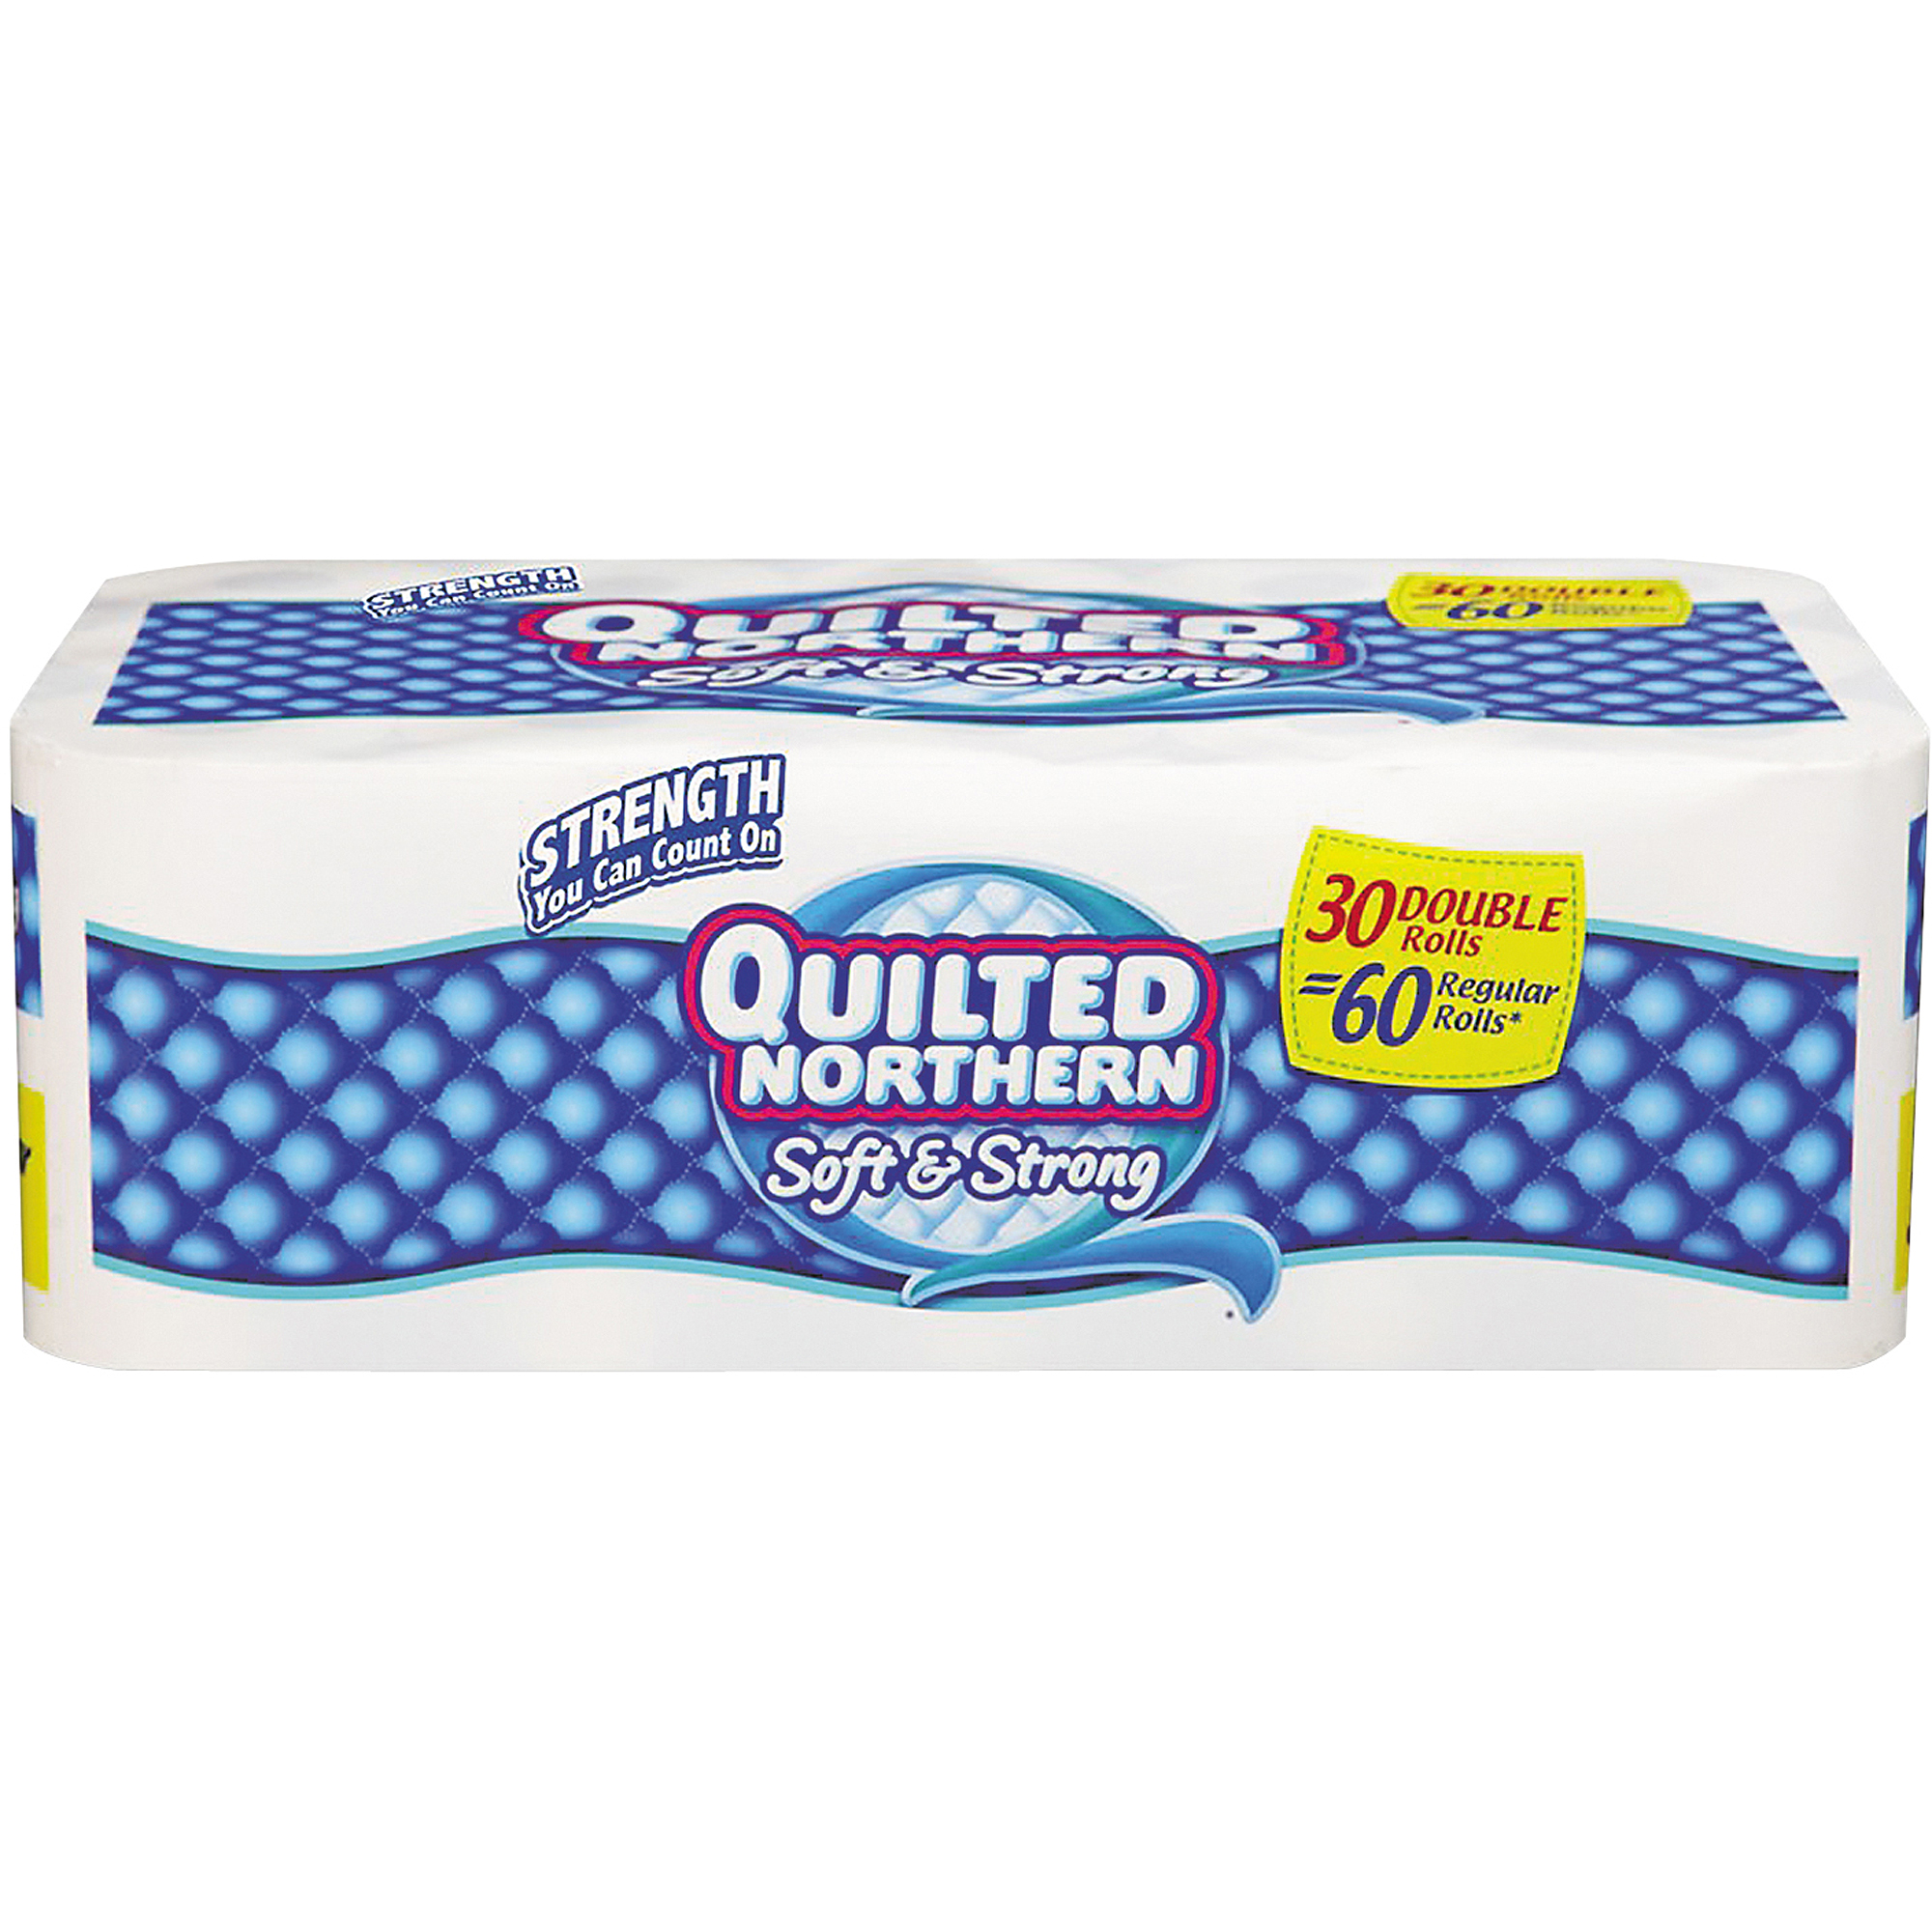 Quilted Northern Soft & Strong Bath Tissue Double Rolls, White, 190 sheets, 30 rolls